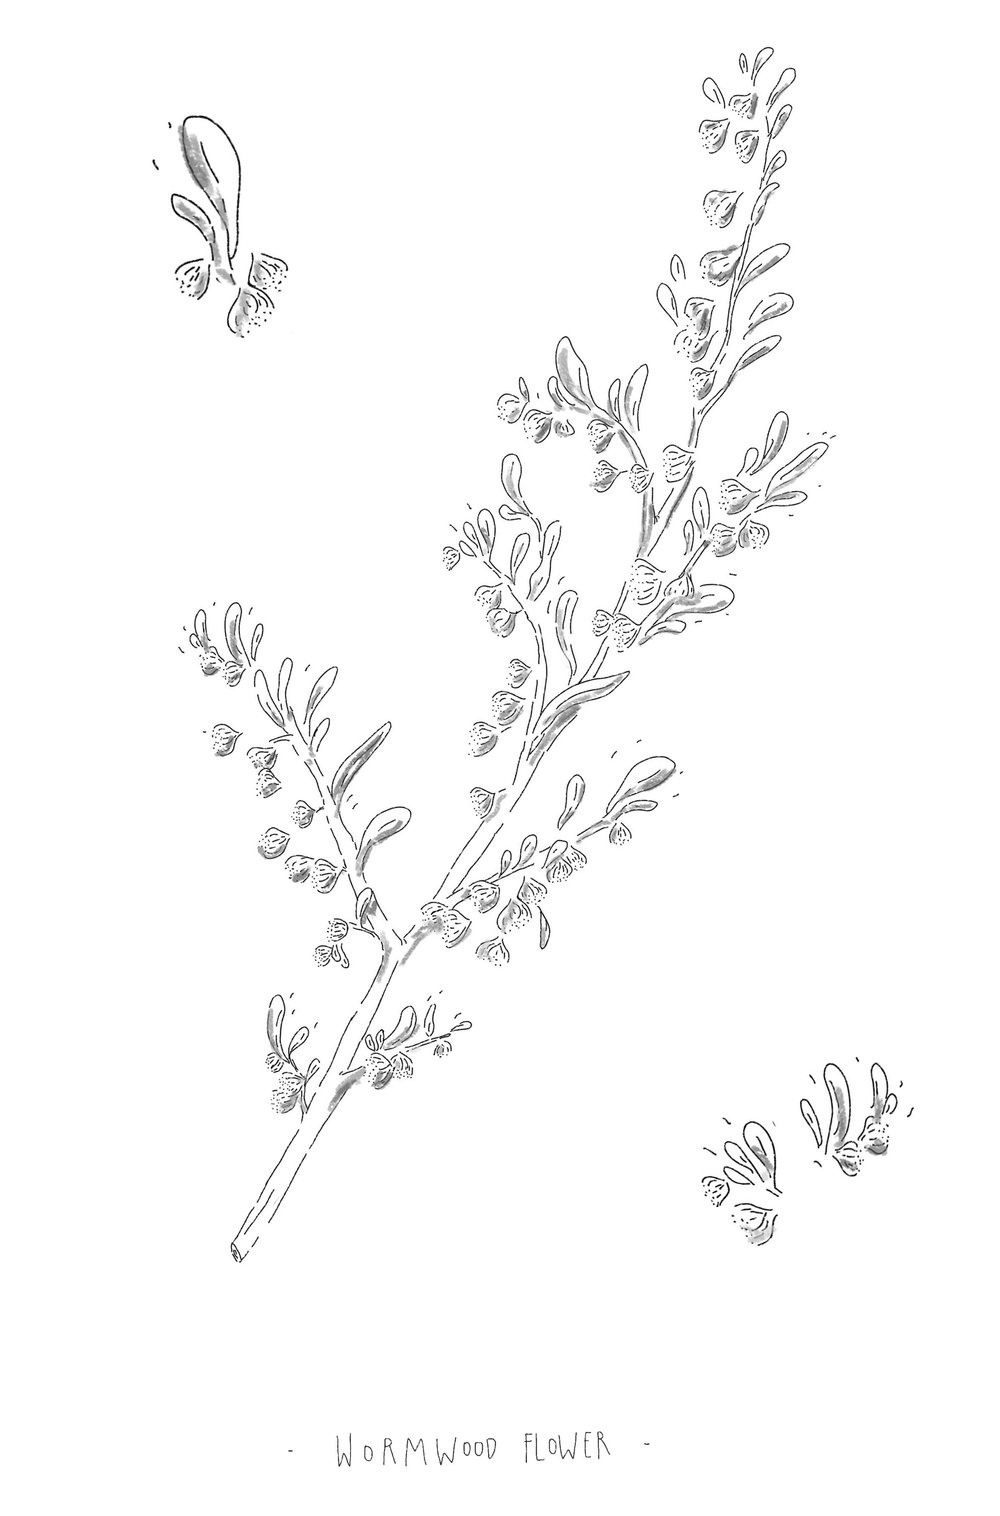 wormwood flower m.jpg